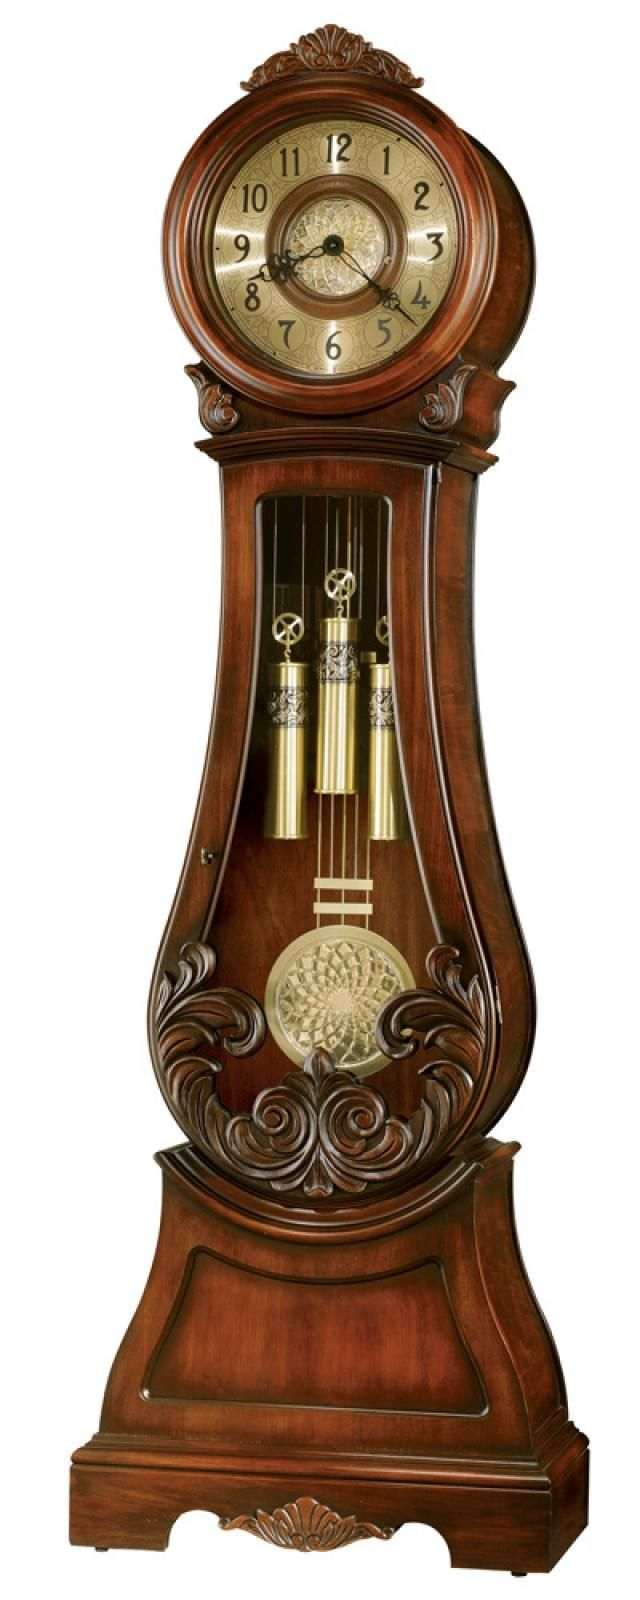 Chiming Grandfather Clock ::  My husband LOVES #clocks ... one day, one day this would be a dream to have!